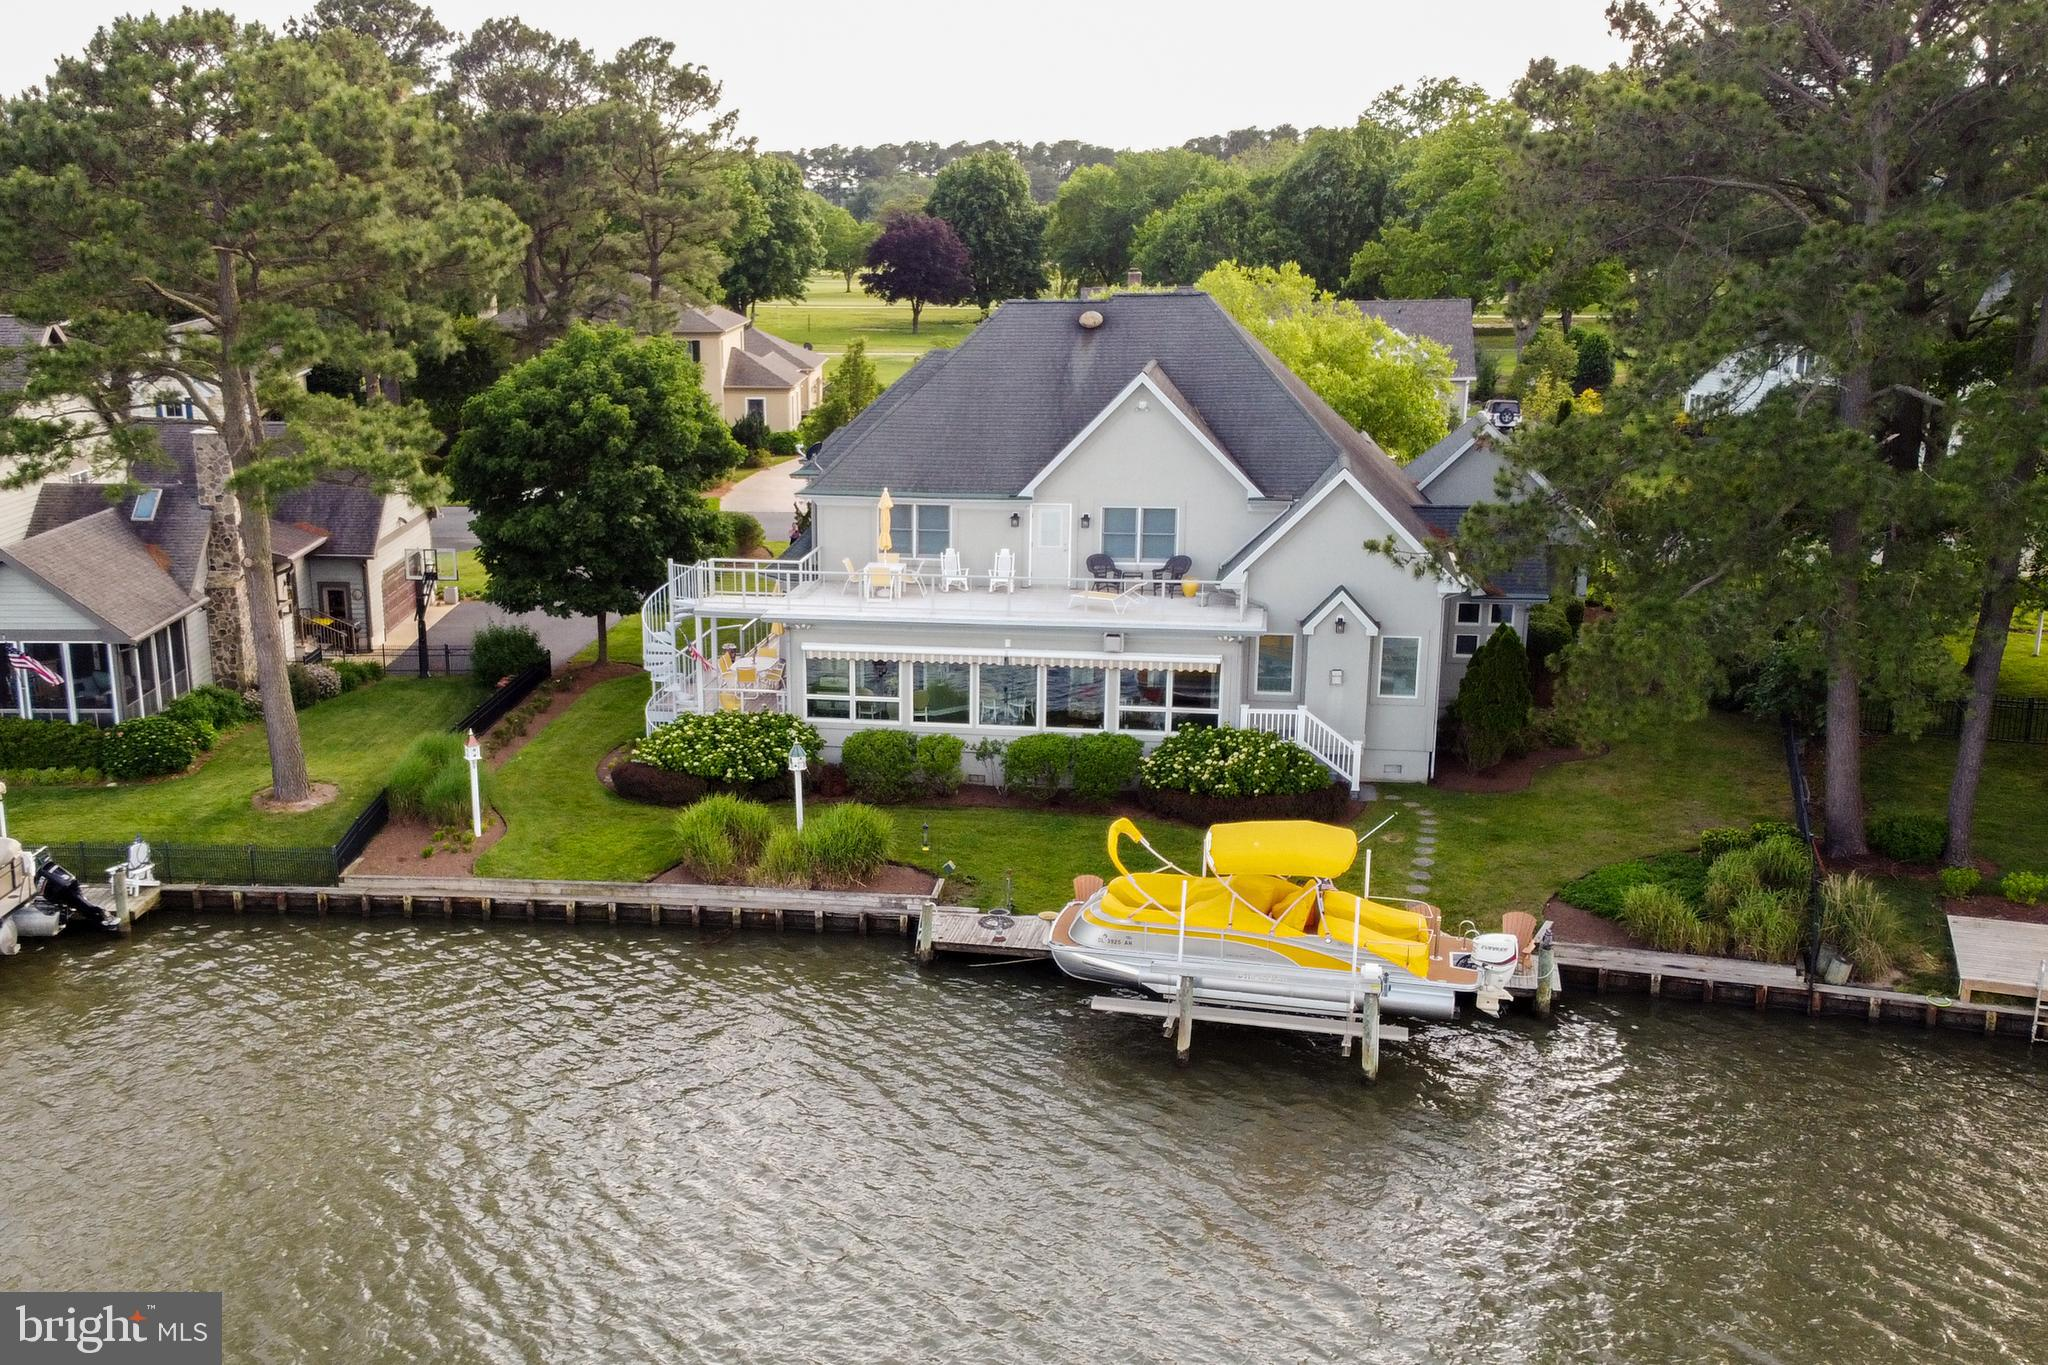 LUXE WATERFRONT LIVING! Life doesn't get any better than in this waterfront home in prestigious RBYCC. Hosting formal and informal get-togethers will be a dream with this contemporary, coastal home, from the grand foyer, to the beautiful living room, to the bright sunroom, to the chef's kitchen, to the cozy den, this home is exceptionally accommodating & showcases the property's scenic waterfront location! Warm-weather parties will flow effortlessly out onto the back decks, & private boat dock with the sparkling water & landscaped grounds providing a picture-perfect backdrop. Other highlights include five spacious bedrooms, including the first floor owner's suite with huge walk-in closet with marble flooring & luxe en-suite bath, hardwood & tile flooring throughout, Zodiaq countertops in the kitchen, three gas fireplaces in the den, owner's suite, & a double fireplace in the living and sunroom, and more (see attached features list)! Located in one of Rehoboth's finest communities, RBYCC offers many membership-optional amenities such as outdoor pool & tennis, golfing, and much more! Just a short drive to Rehoboth and Lewes Beach shops, attractions, and the beach! Call Today! Sellers can settle anytime , but do not want to move until the end of the  year.